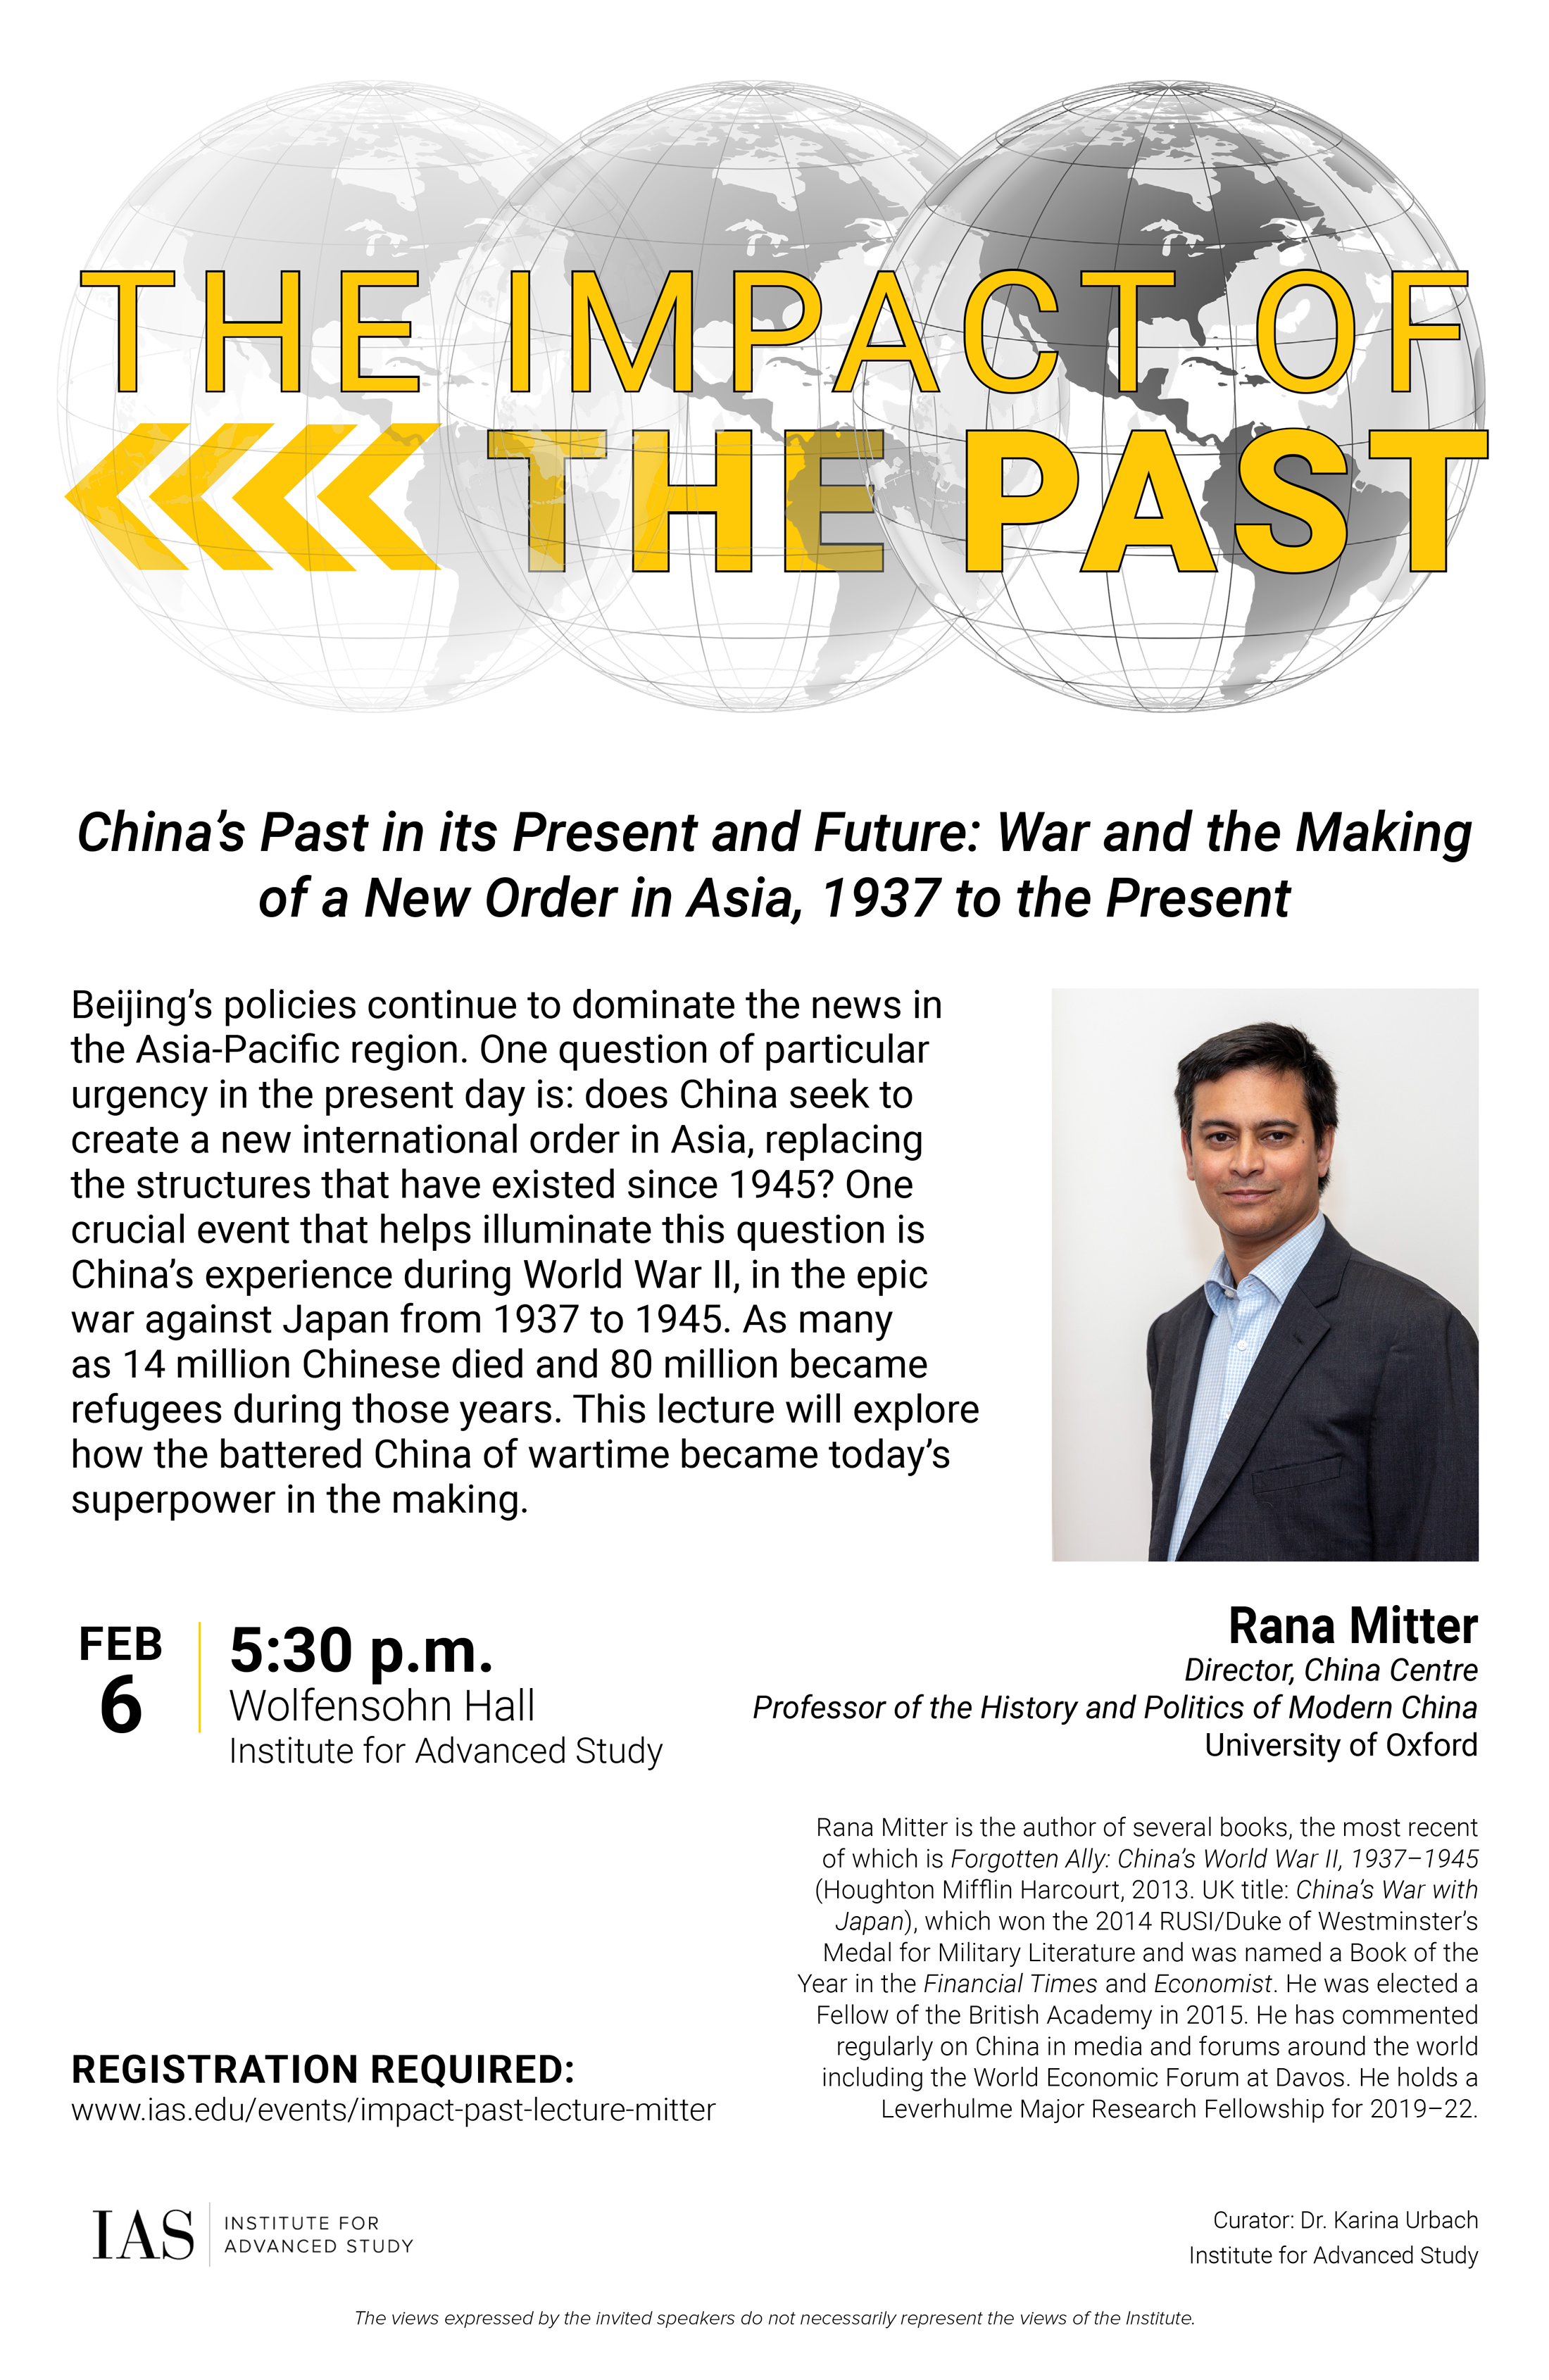 Impact of the Past Lecture: Rana Mitter on China's Past in